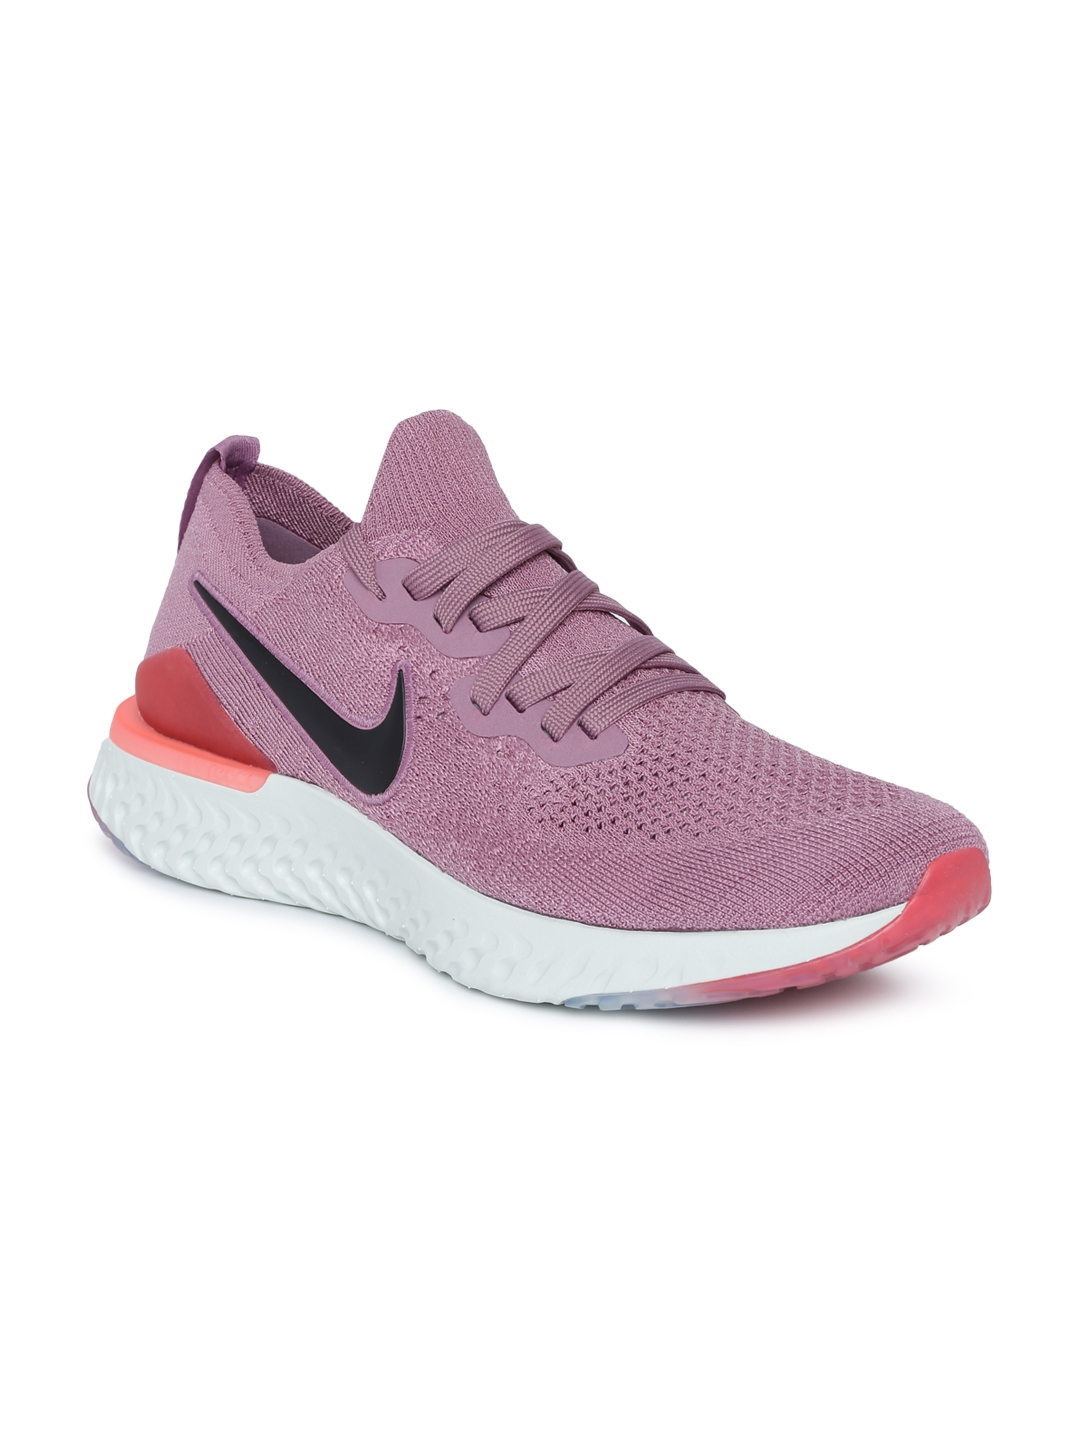 fb91569e751ac Buy Nike Women Purple EPIC REACT FLYKNIT 2 Running Shoes - Sports ...